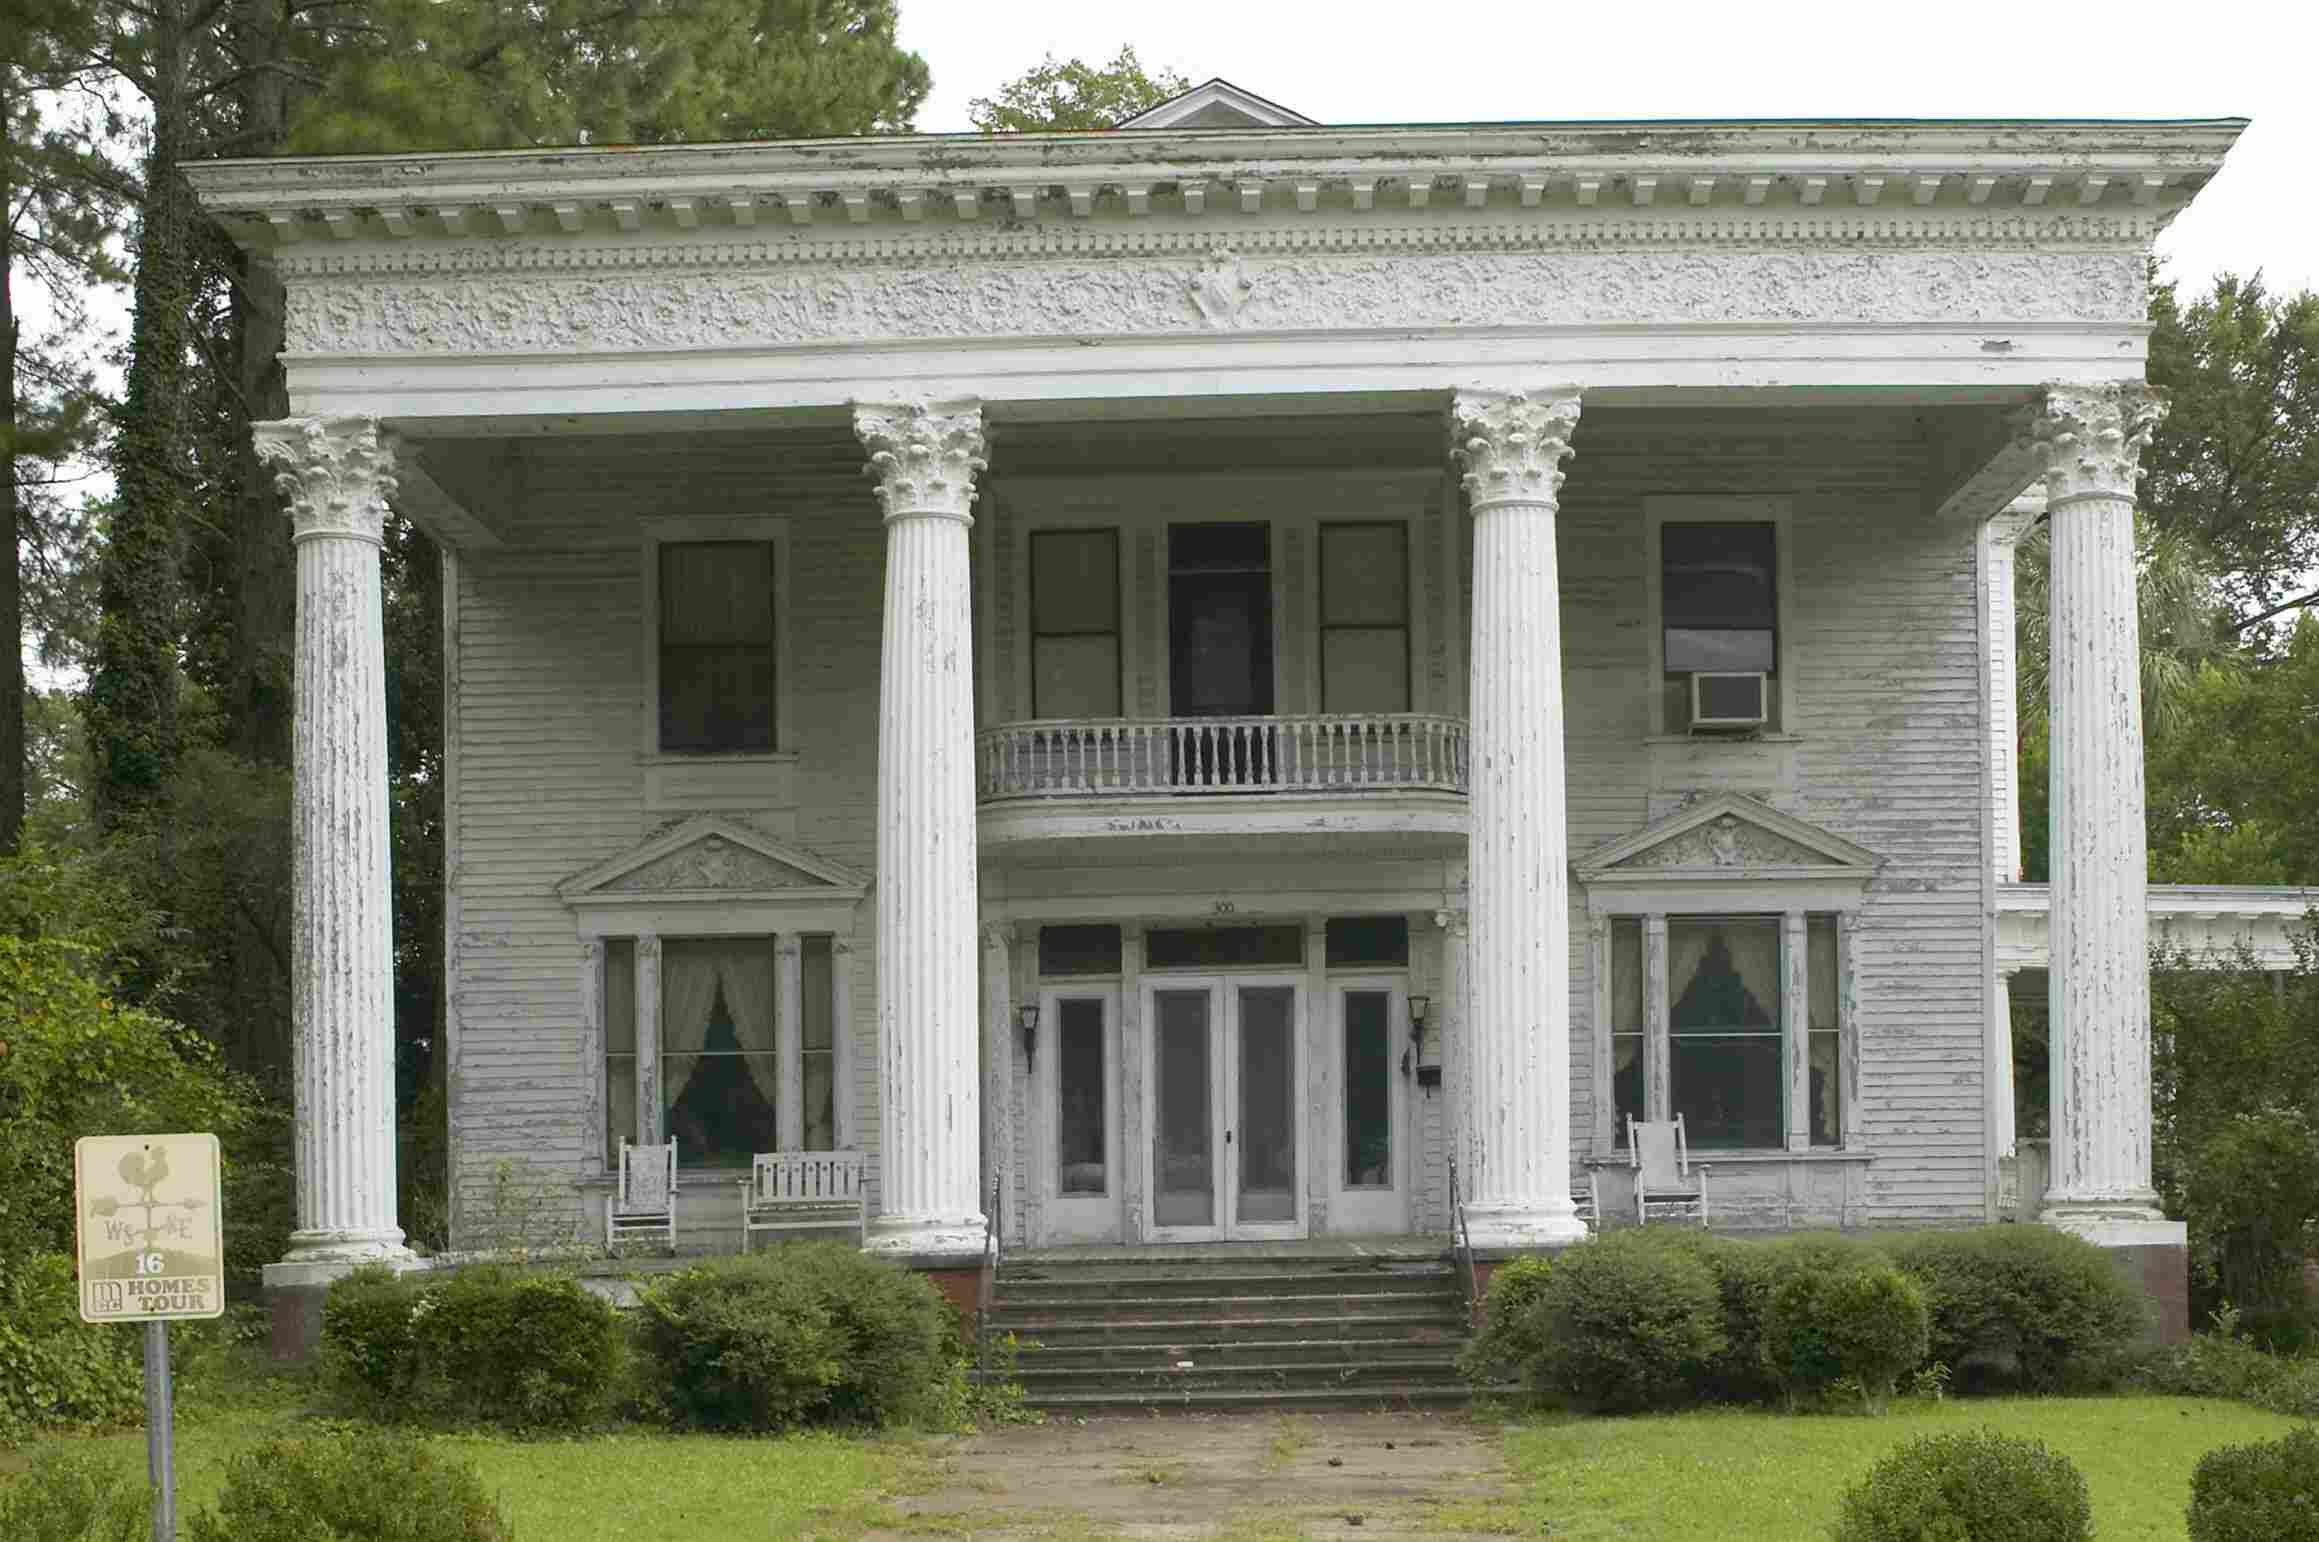 flat-roofed mansion with imposing classical facade, including large, two-story tall columns and an ornate horzontal band between the column capitals and the dentils under the roof eave